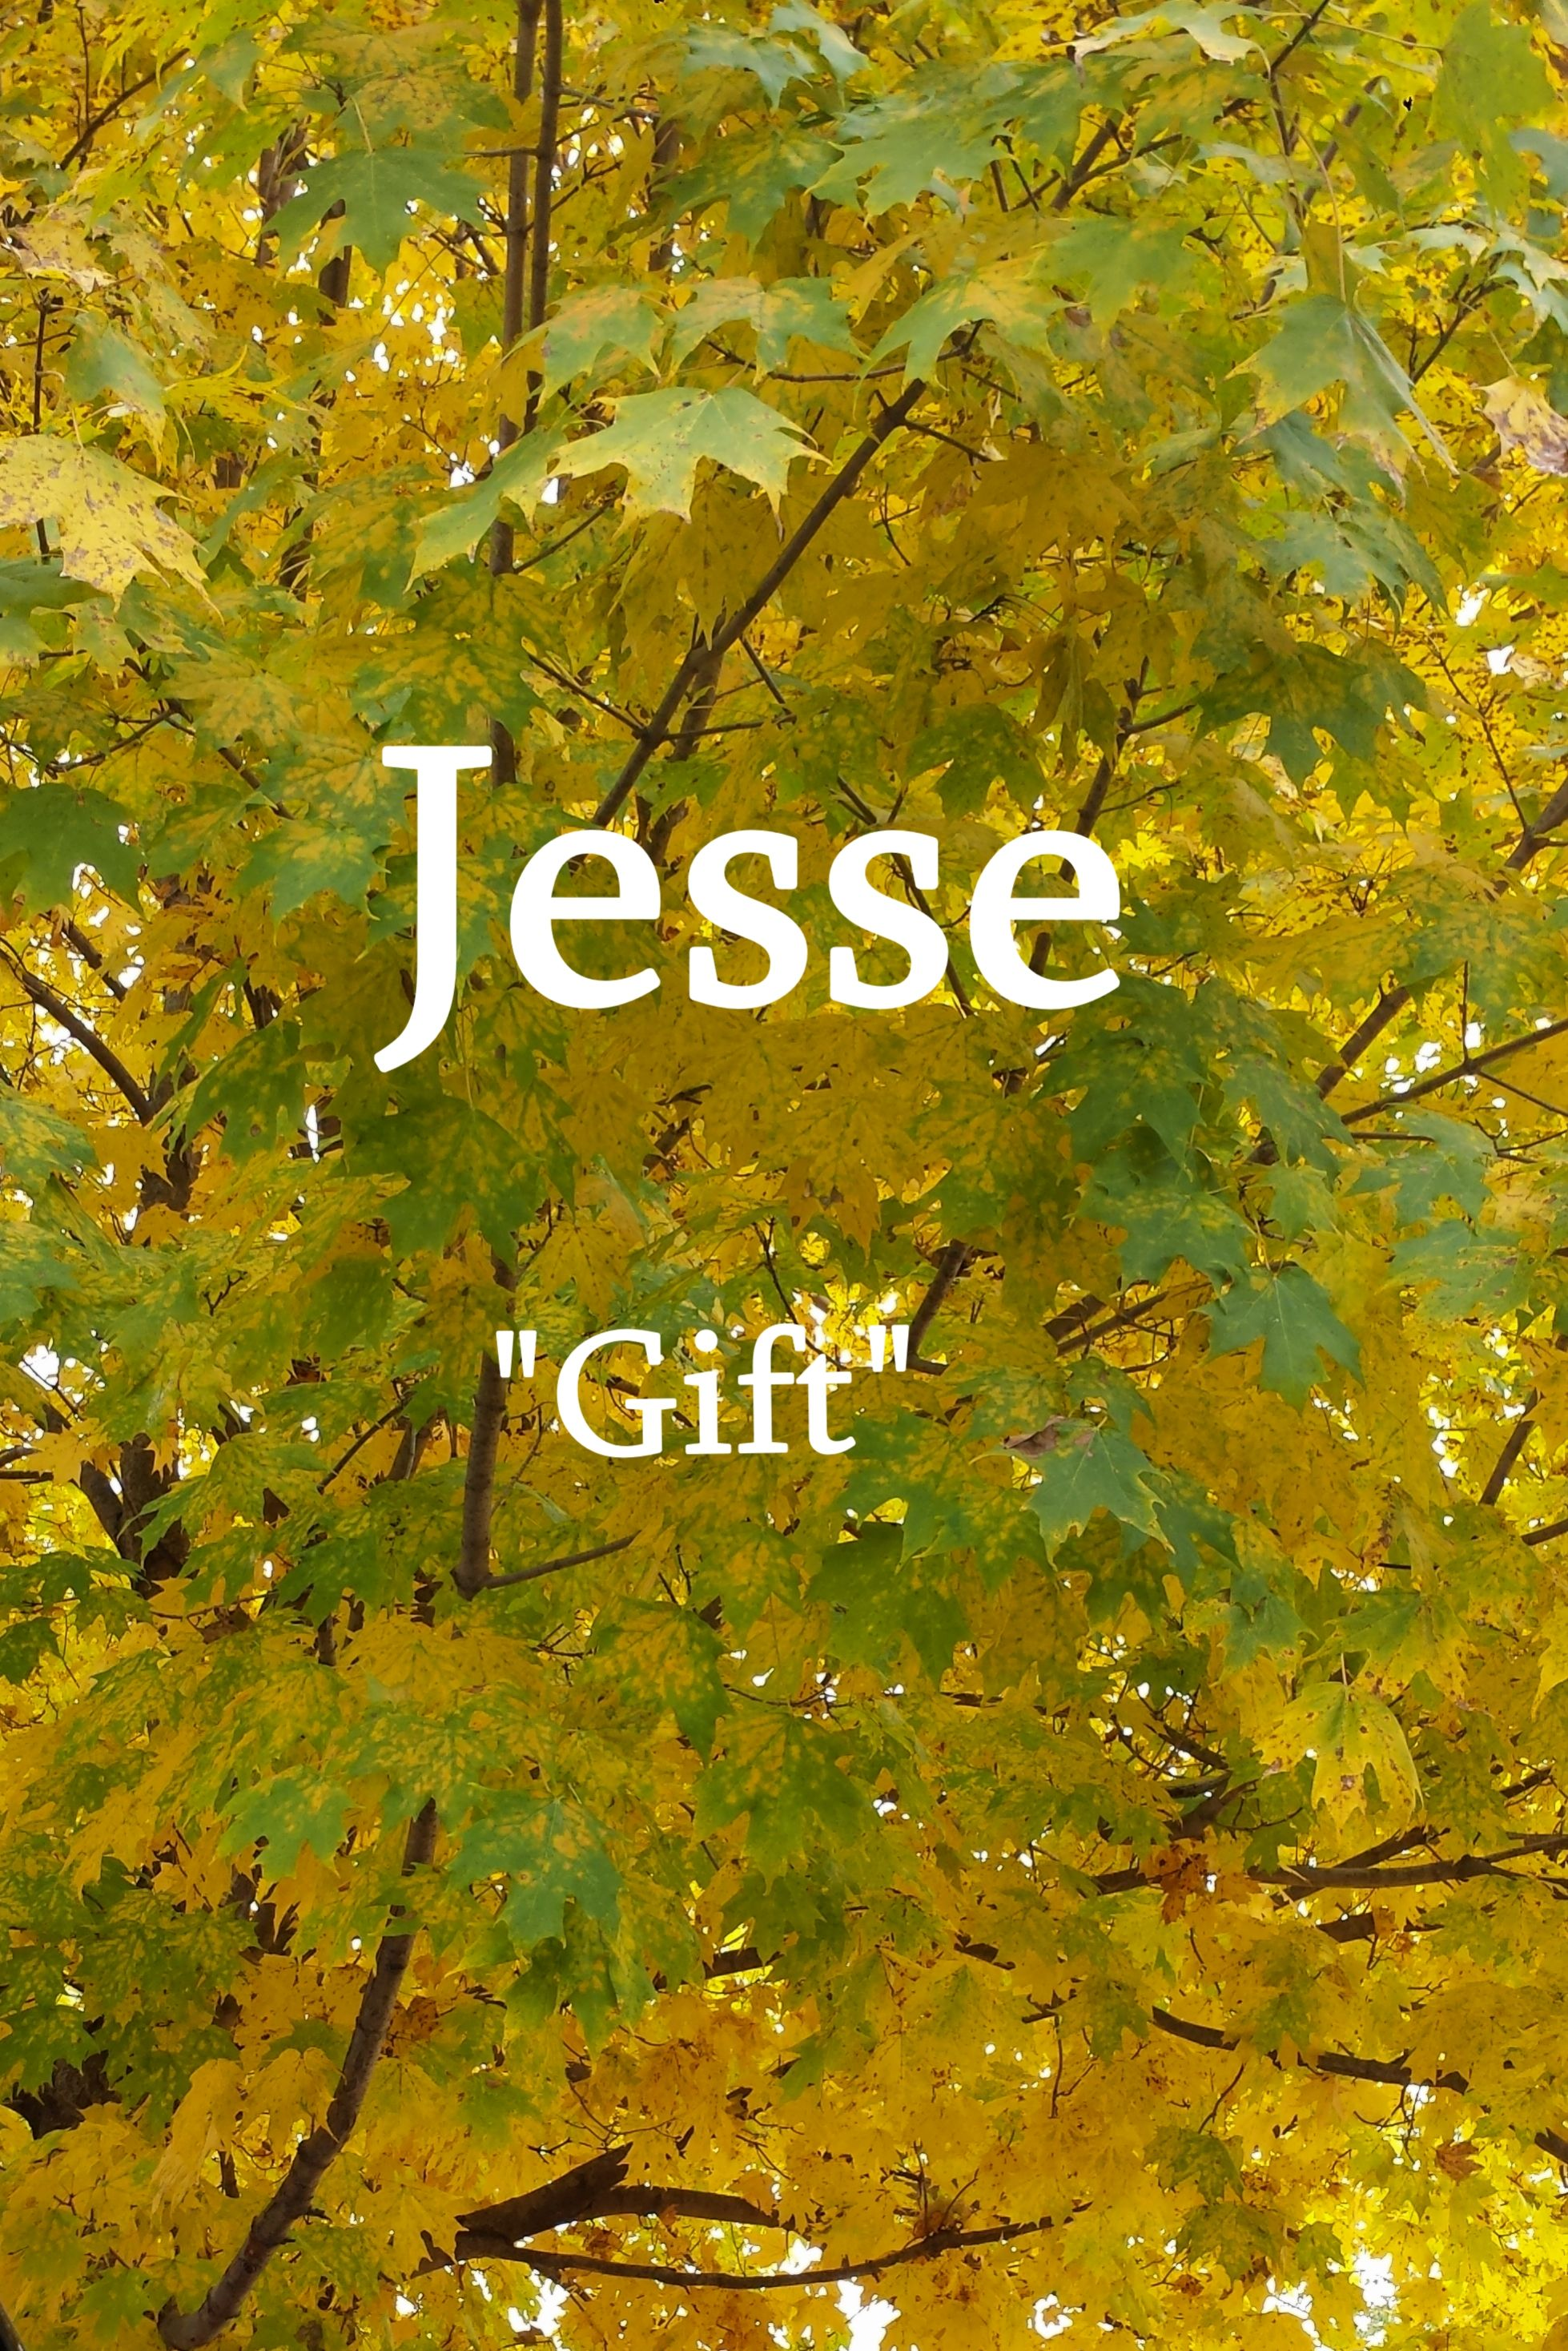 """Jesse, a Hebrew name meaning """"gift"""" Names with meaning"""